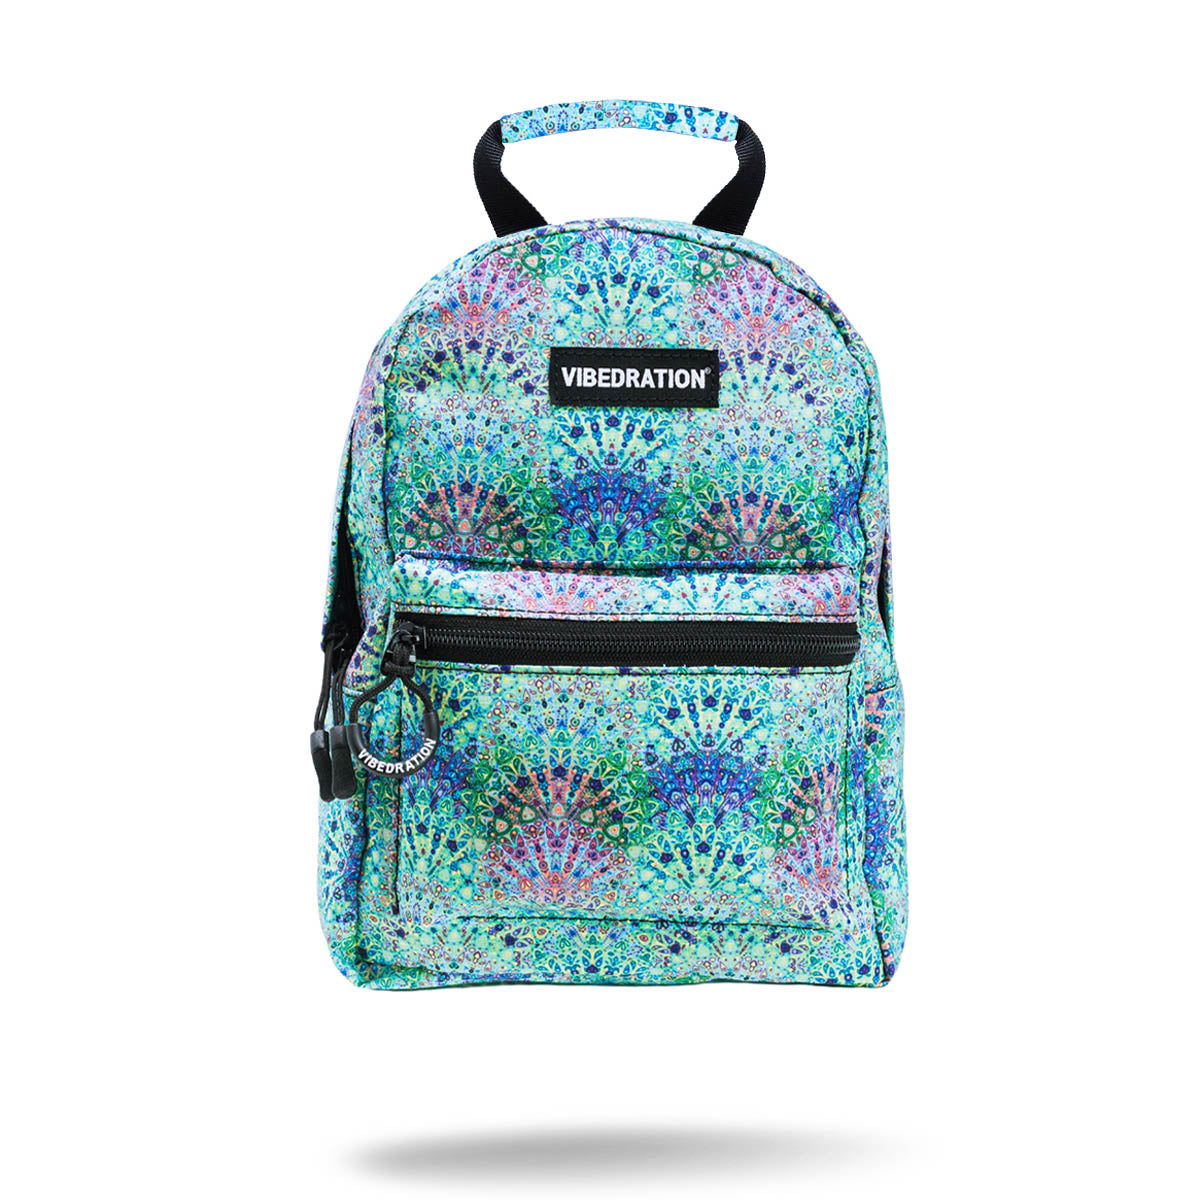 Boho Printed Mini Backpack that holds water